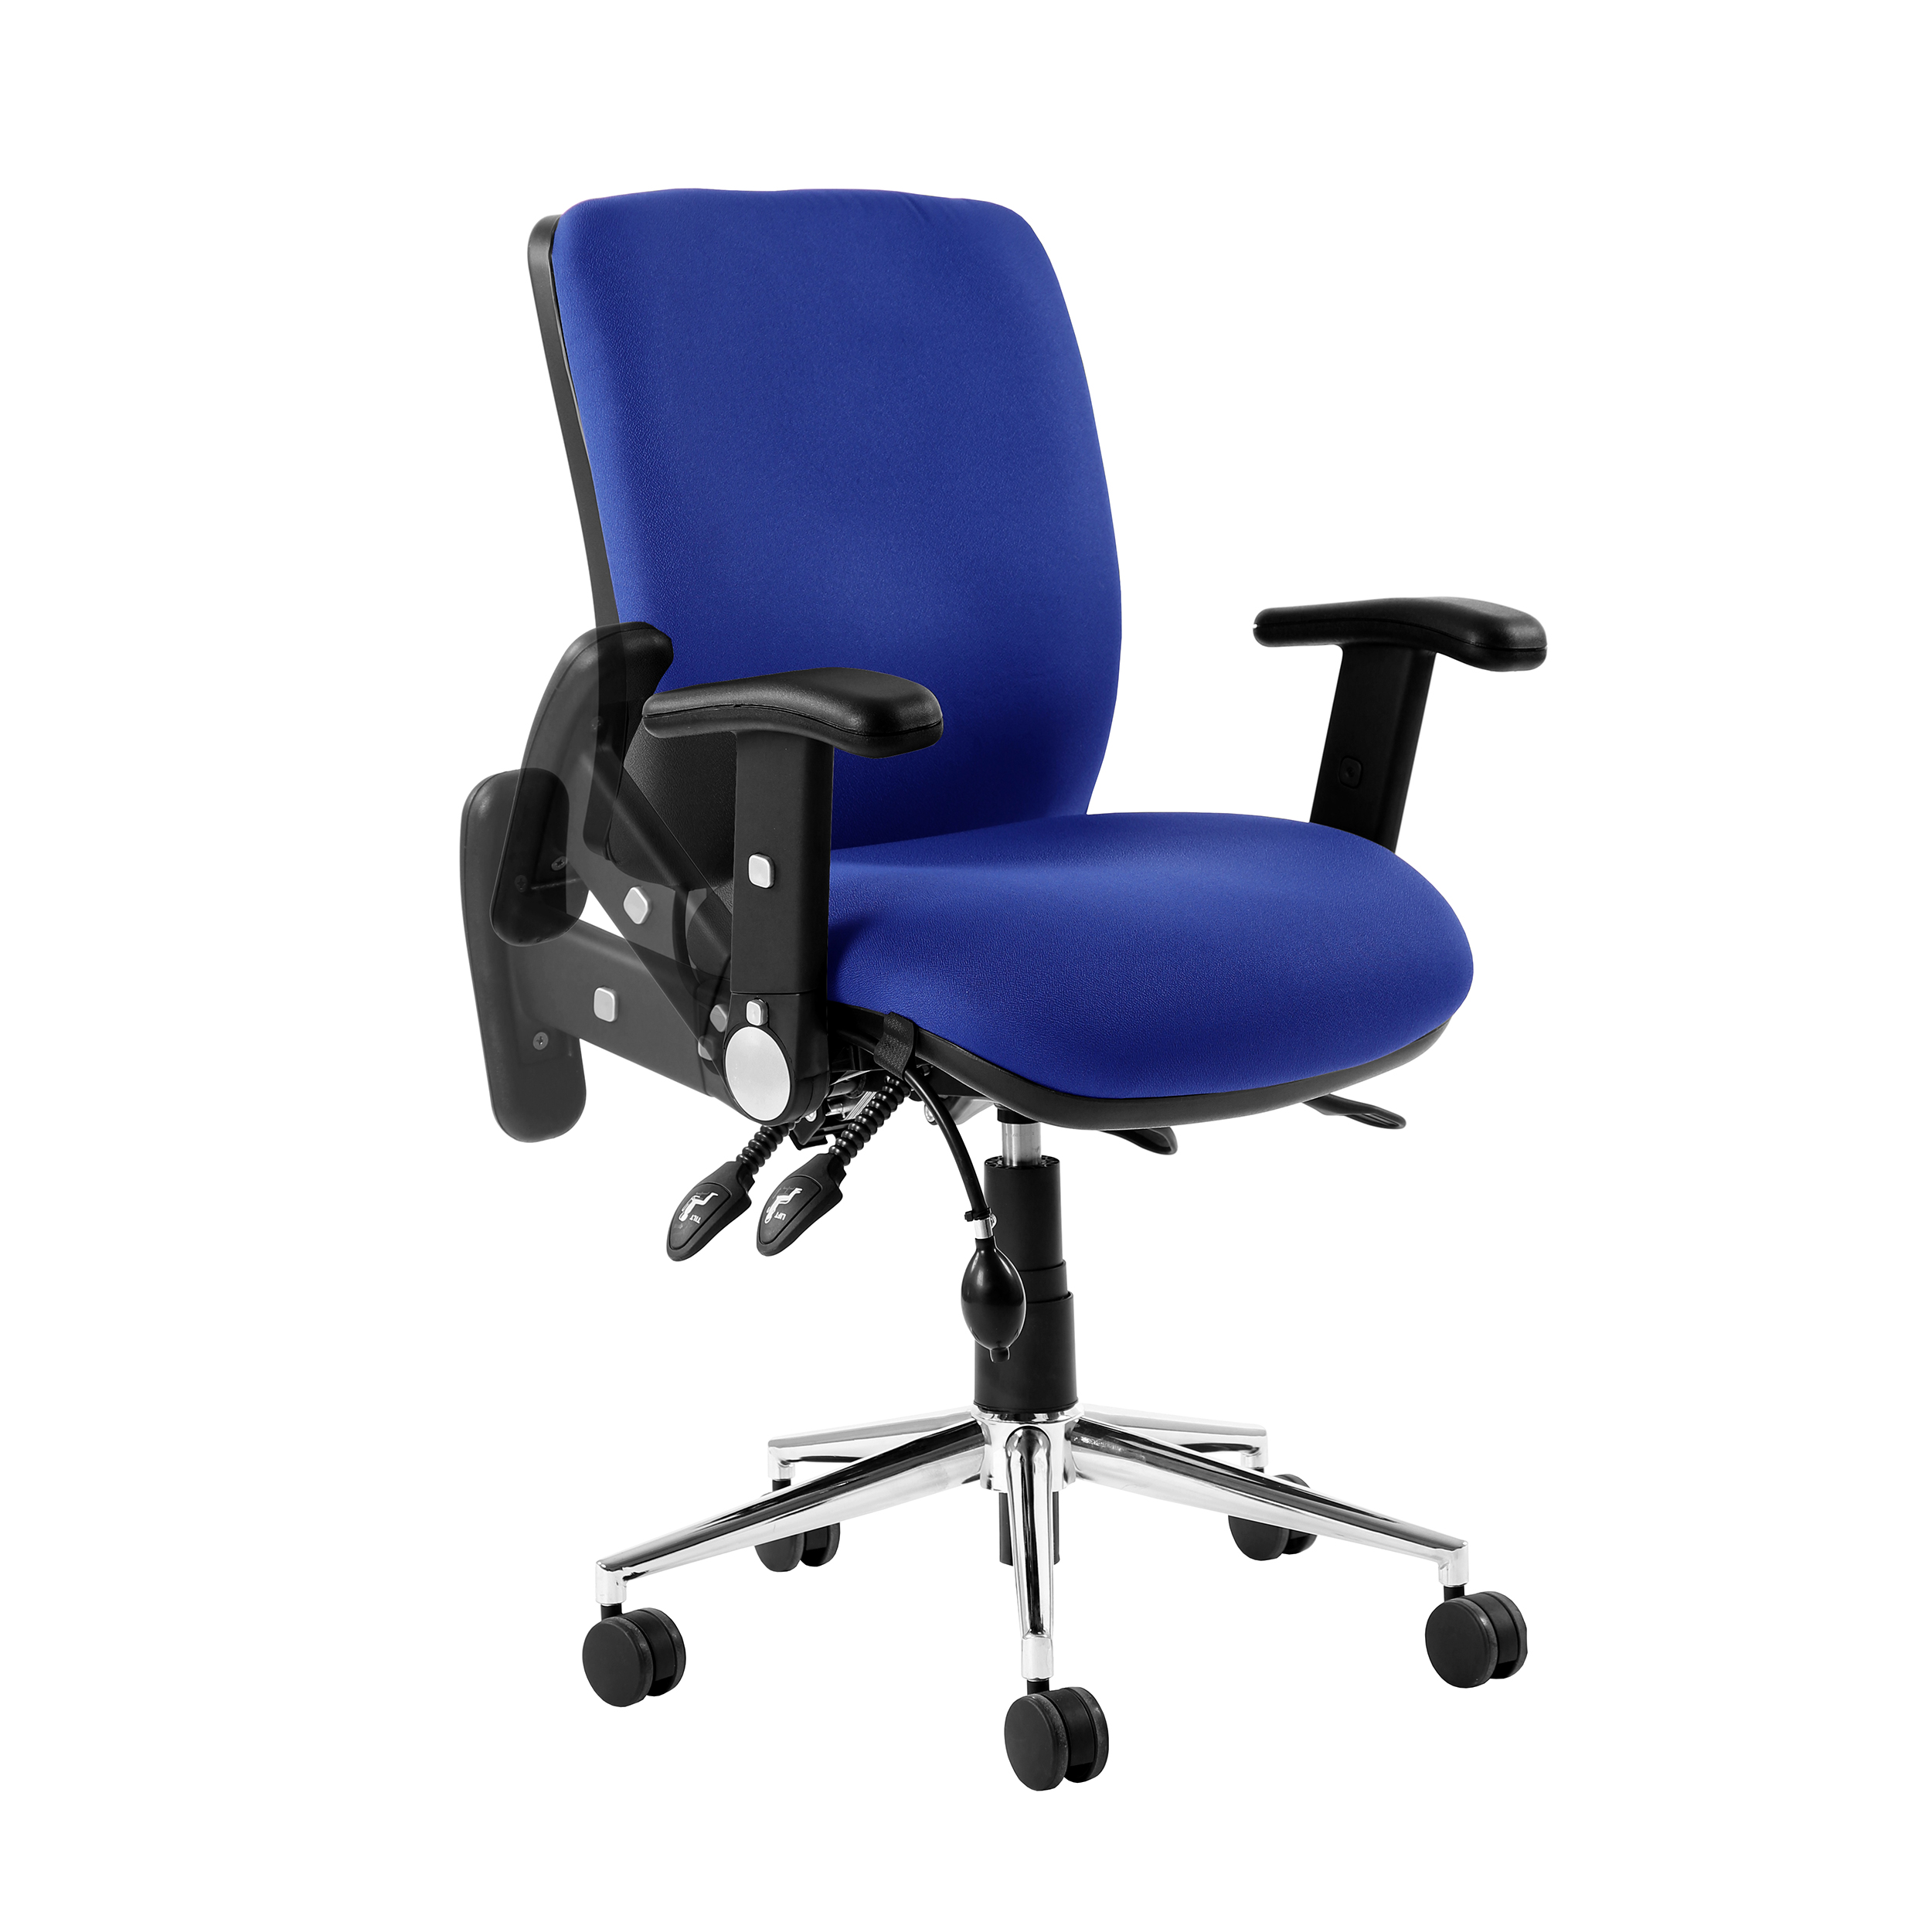 Task seating Sonix Chiro Height Adjustable And Foldaway Arm Ref AC000001